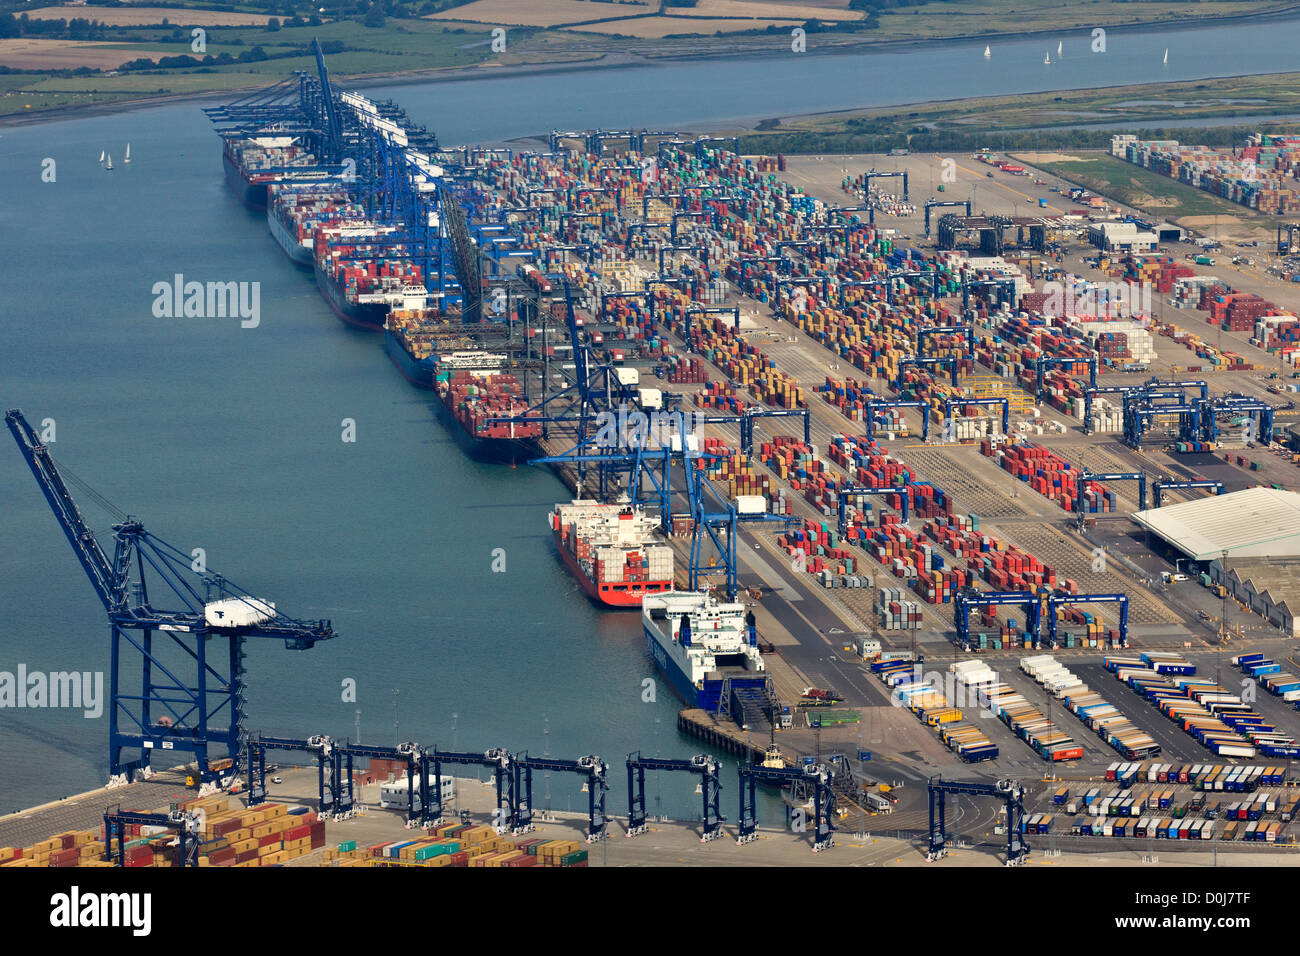 Aerial view of the Felixstowe Port and Container Terminal. - Stock Image